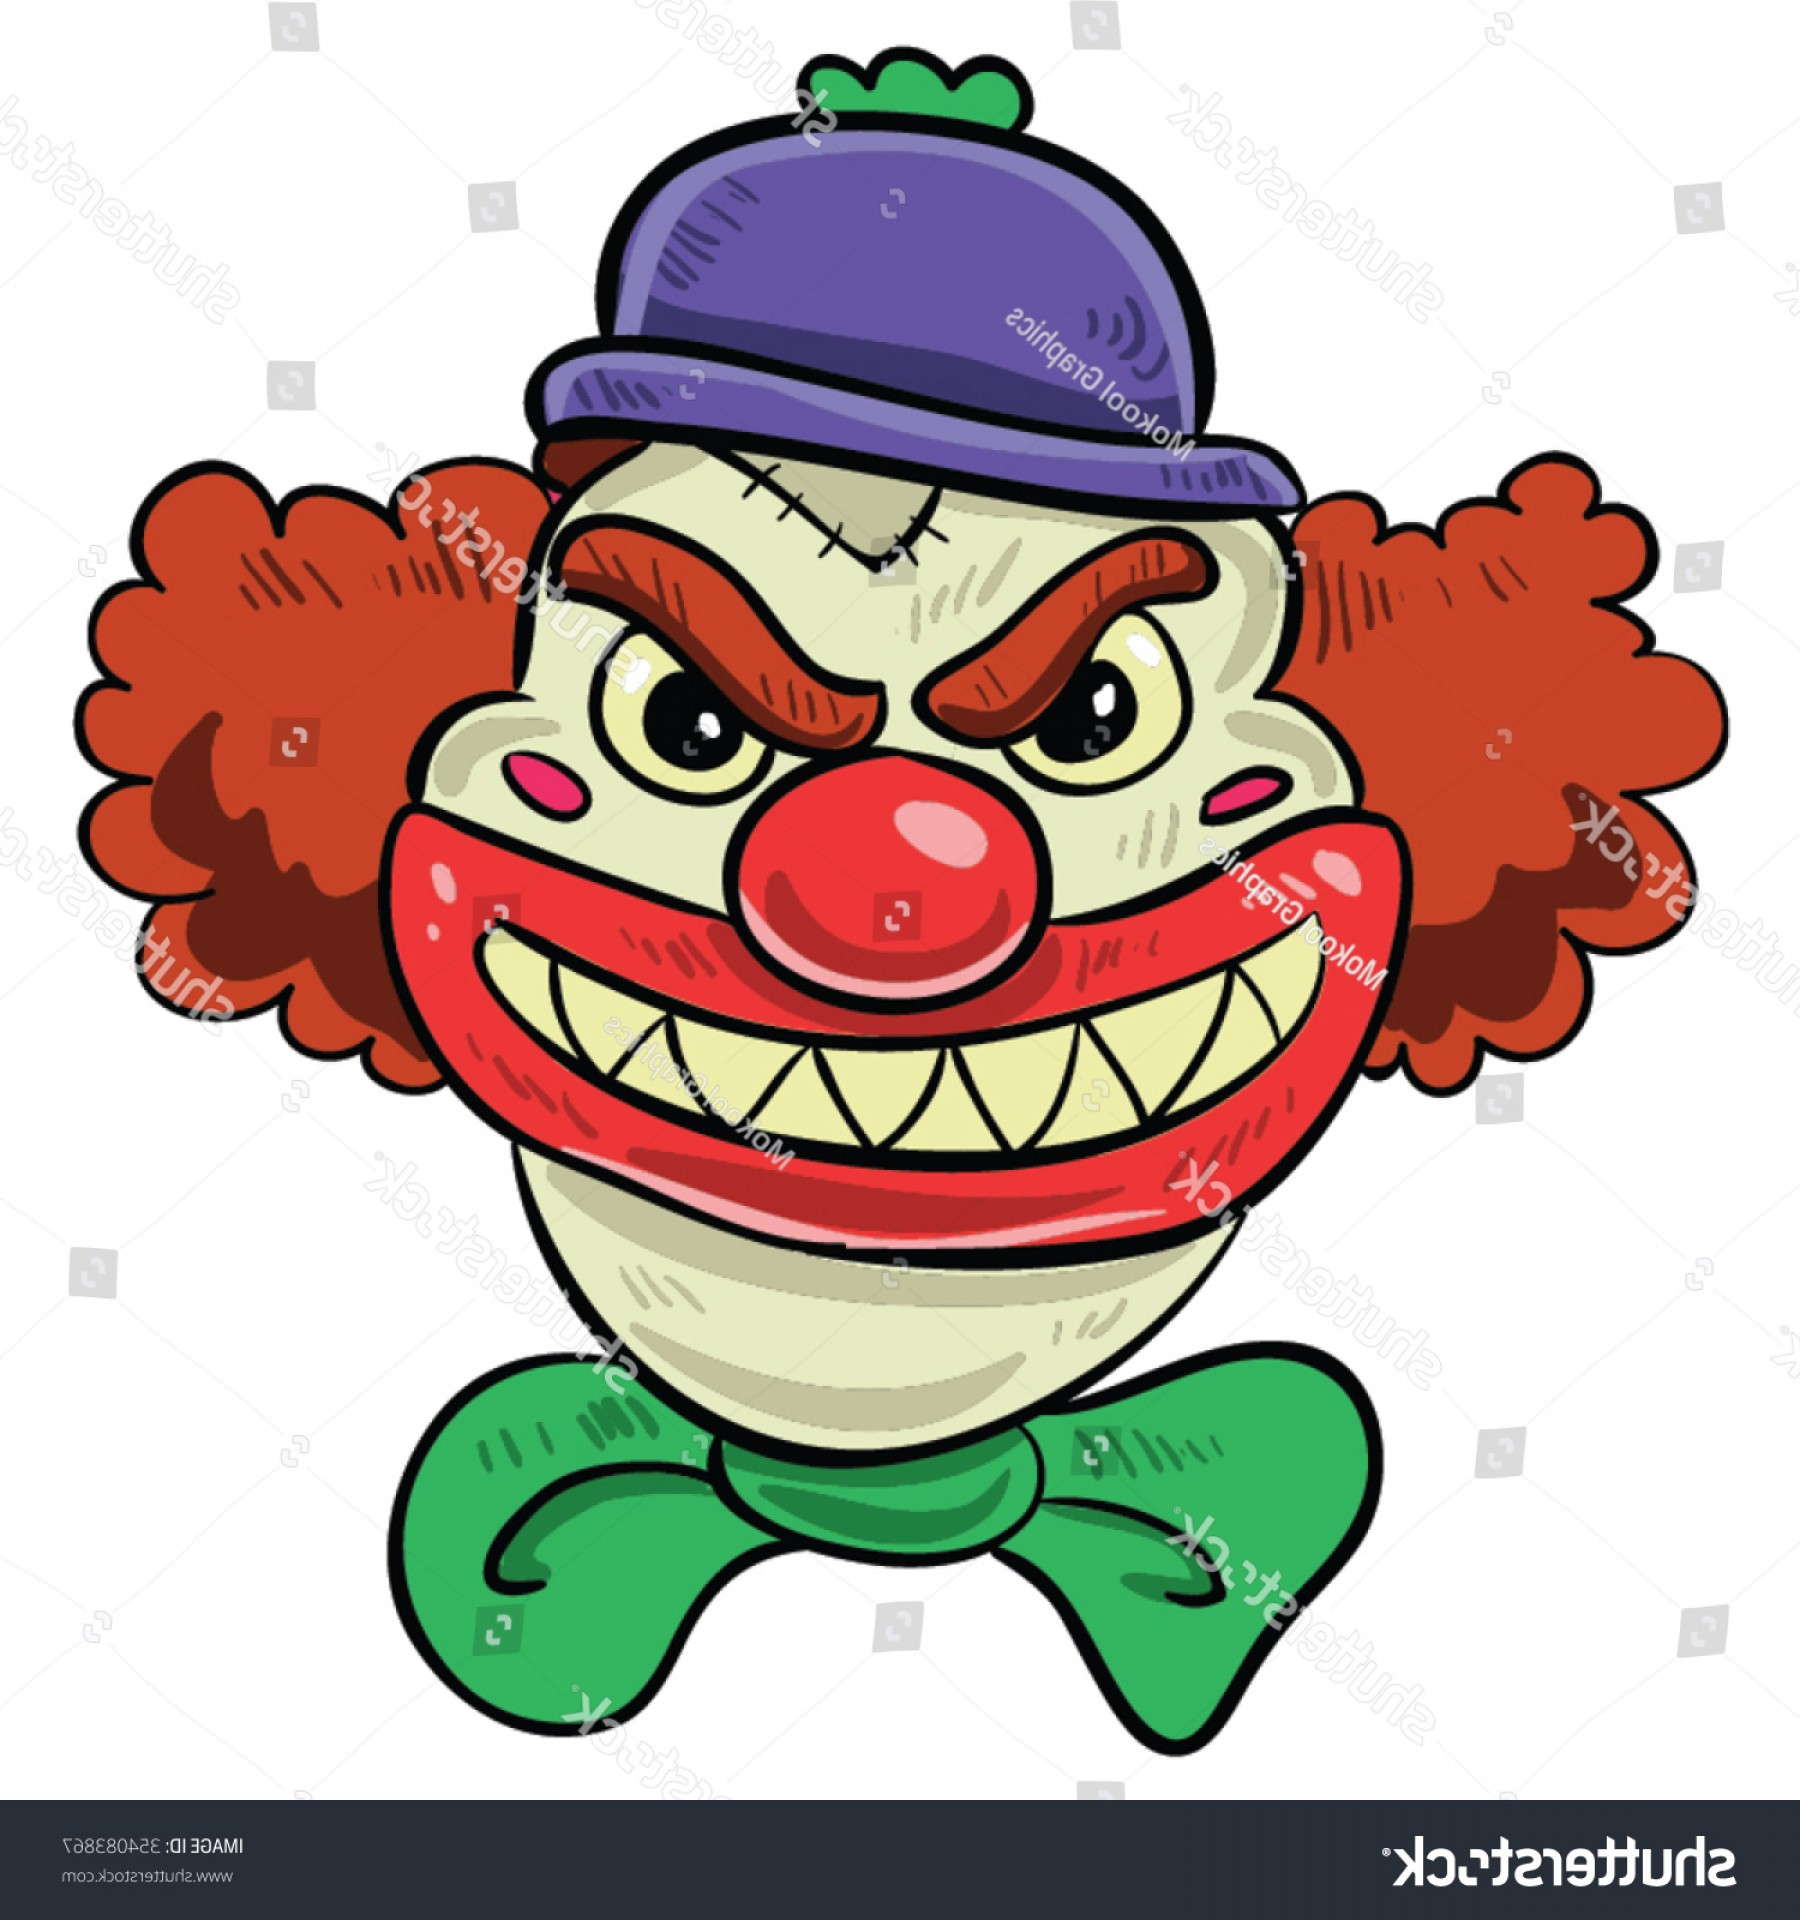 Creepy Clown Vector: Scary Clown Big Smile Red Hair